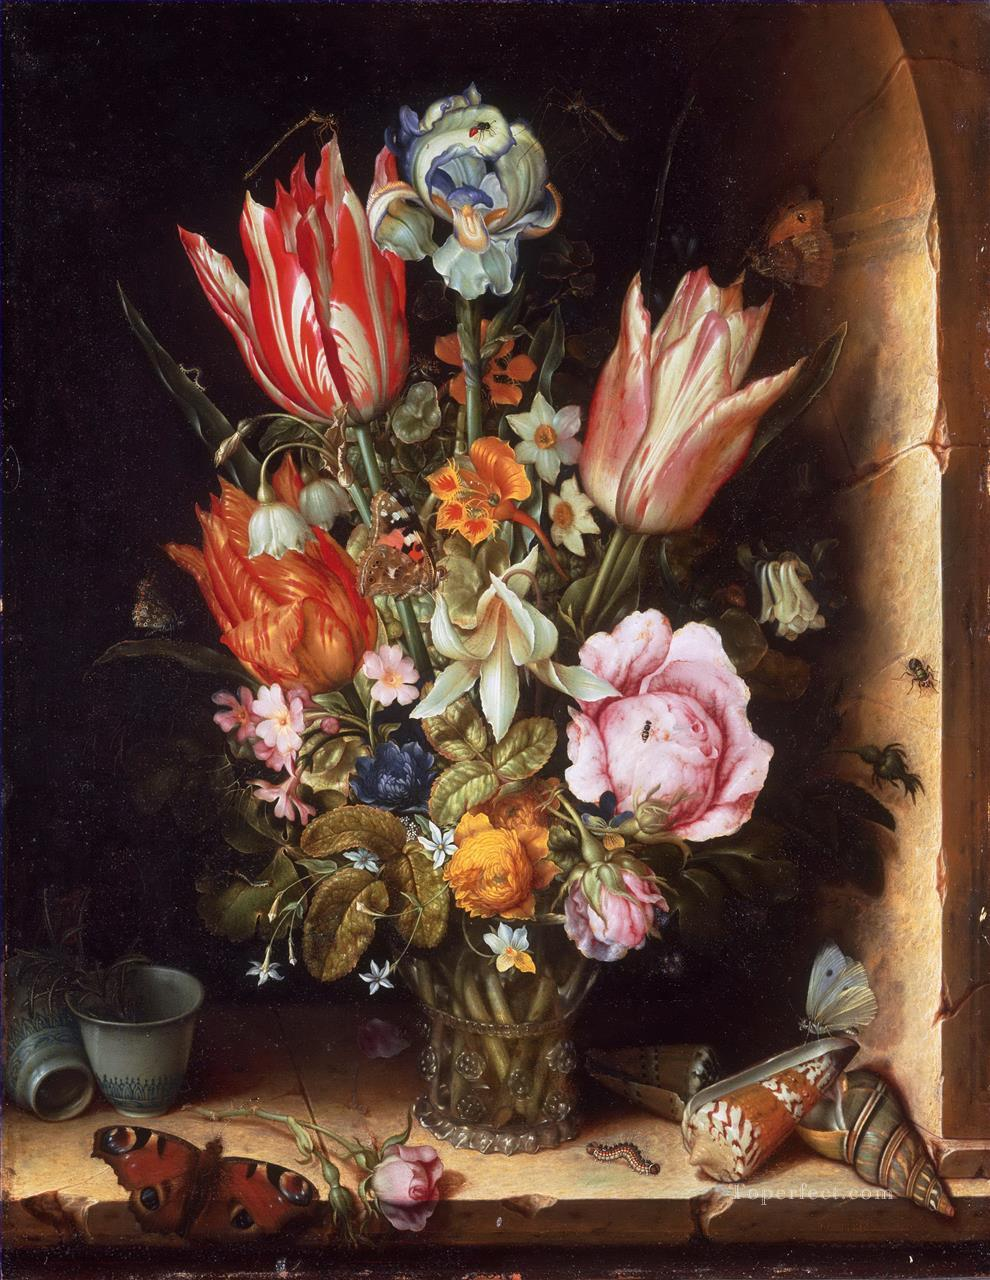 4-Bosschaert-Ambrosius-Still-life-with-flowers-and-sea-shells.jpg